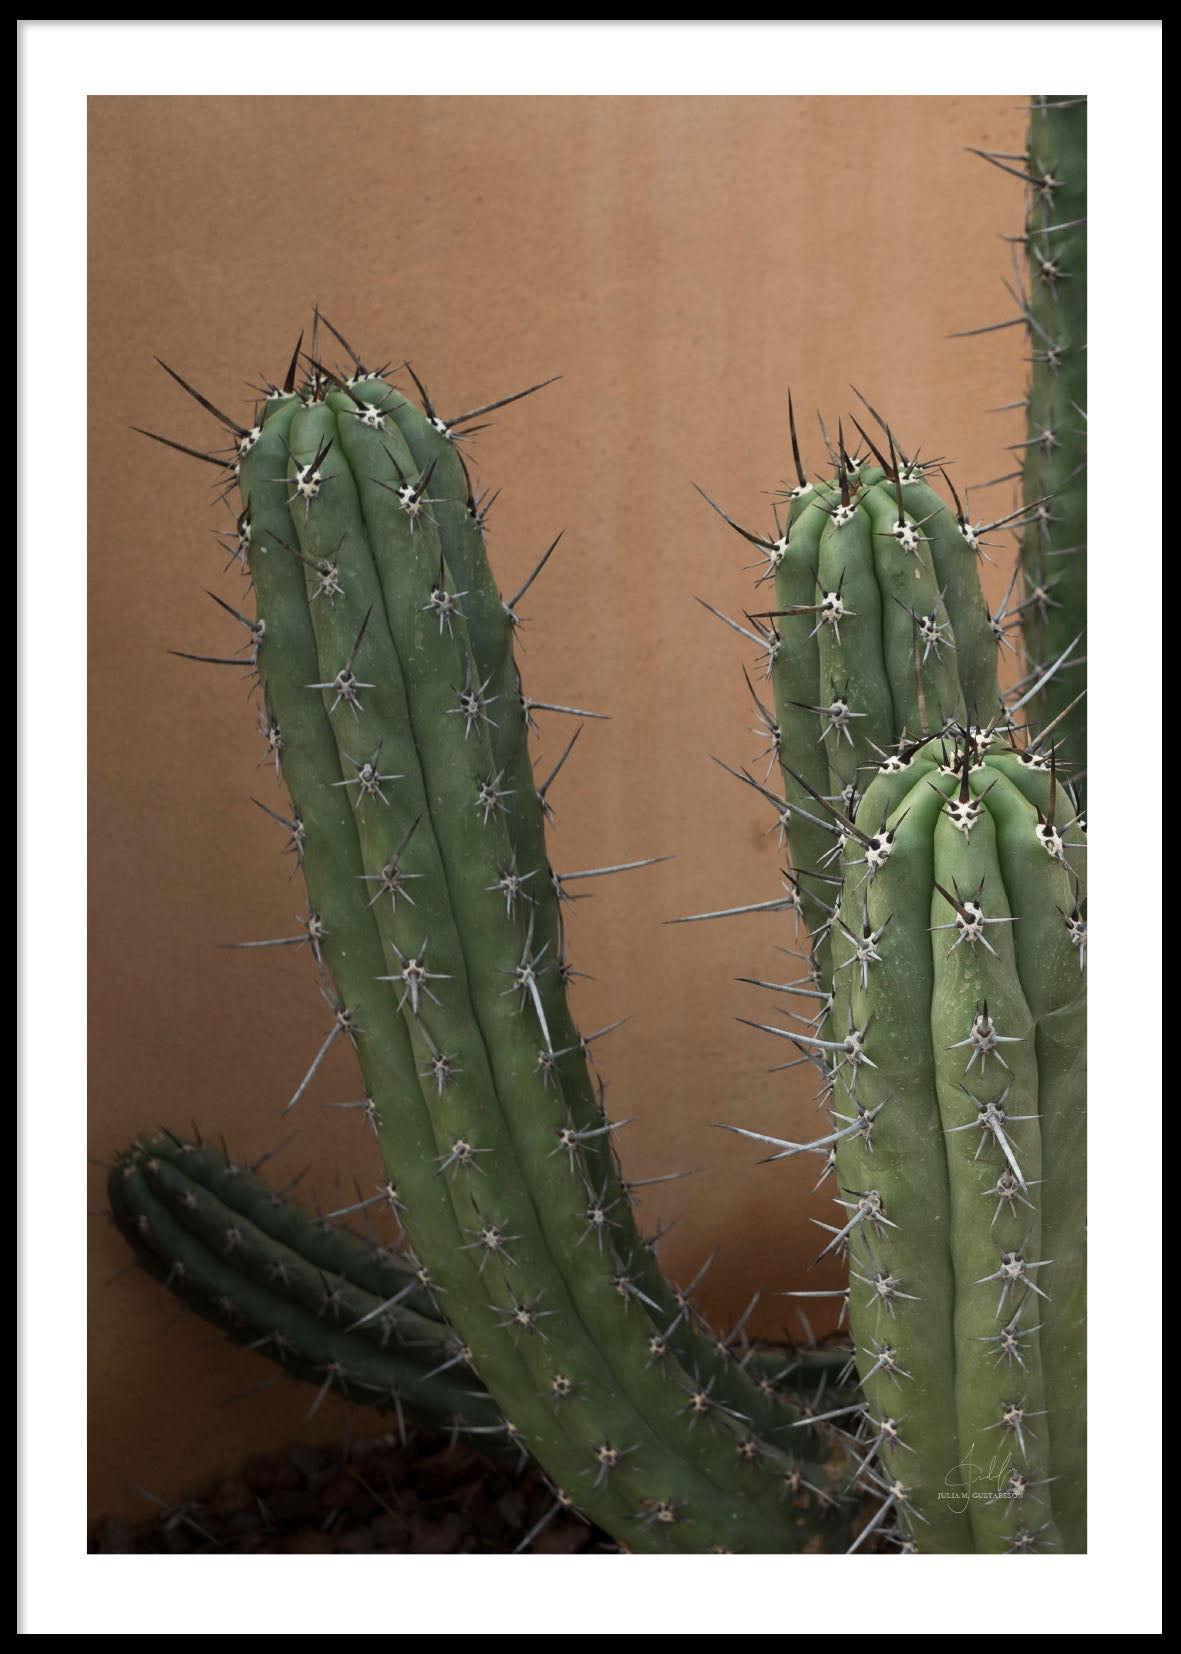 CACTUS CLOSE UP SPAIN POSTER